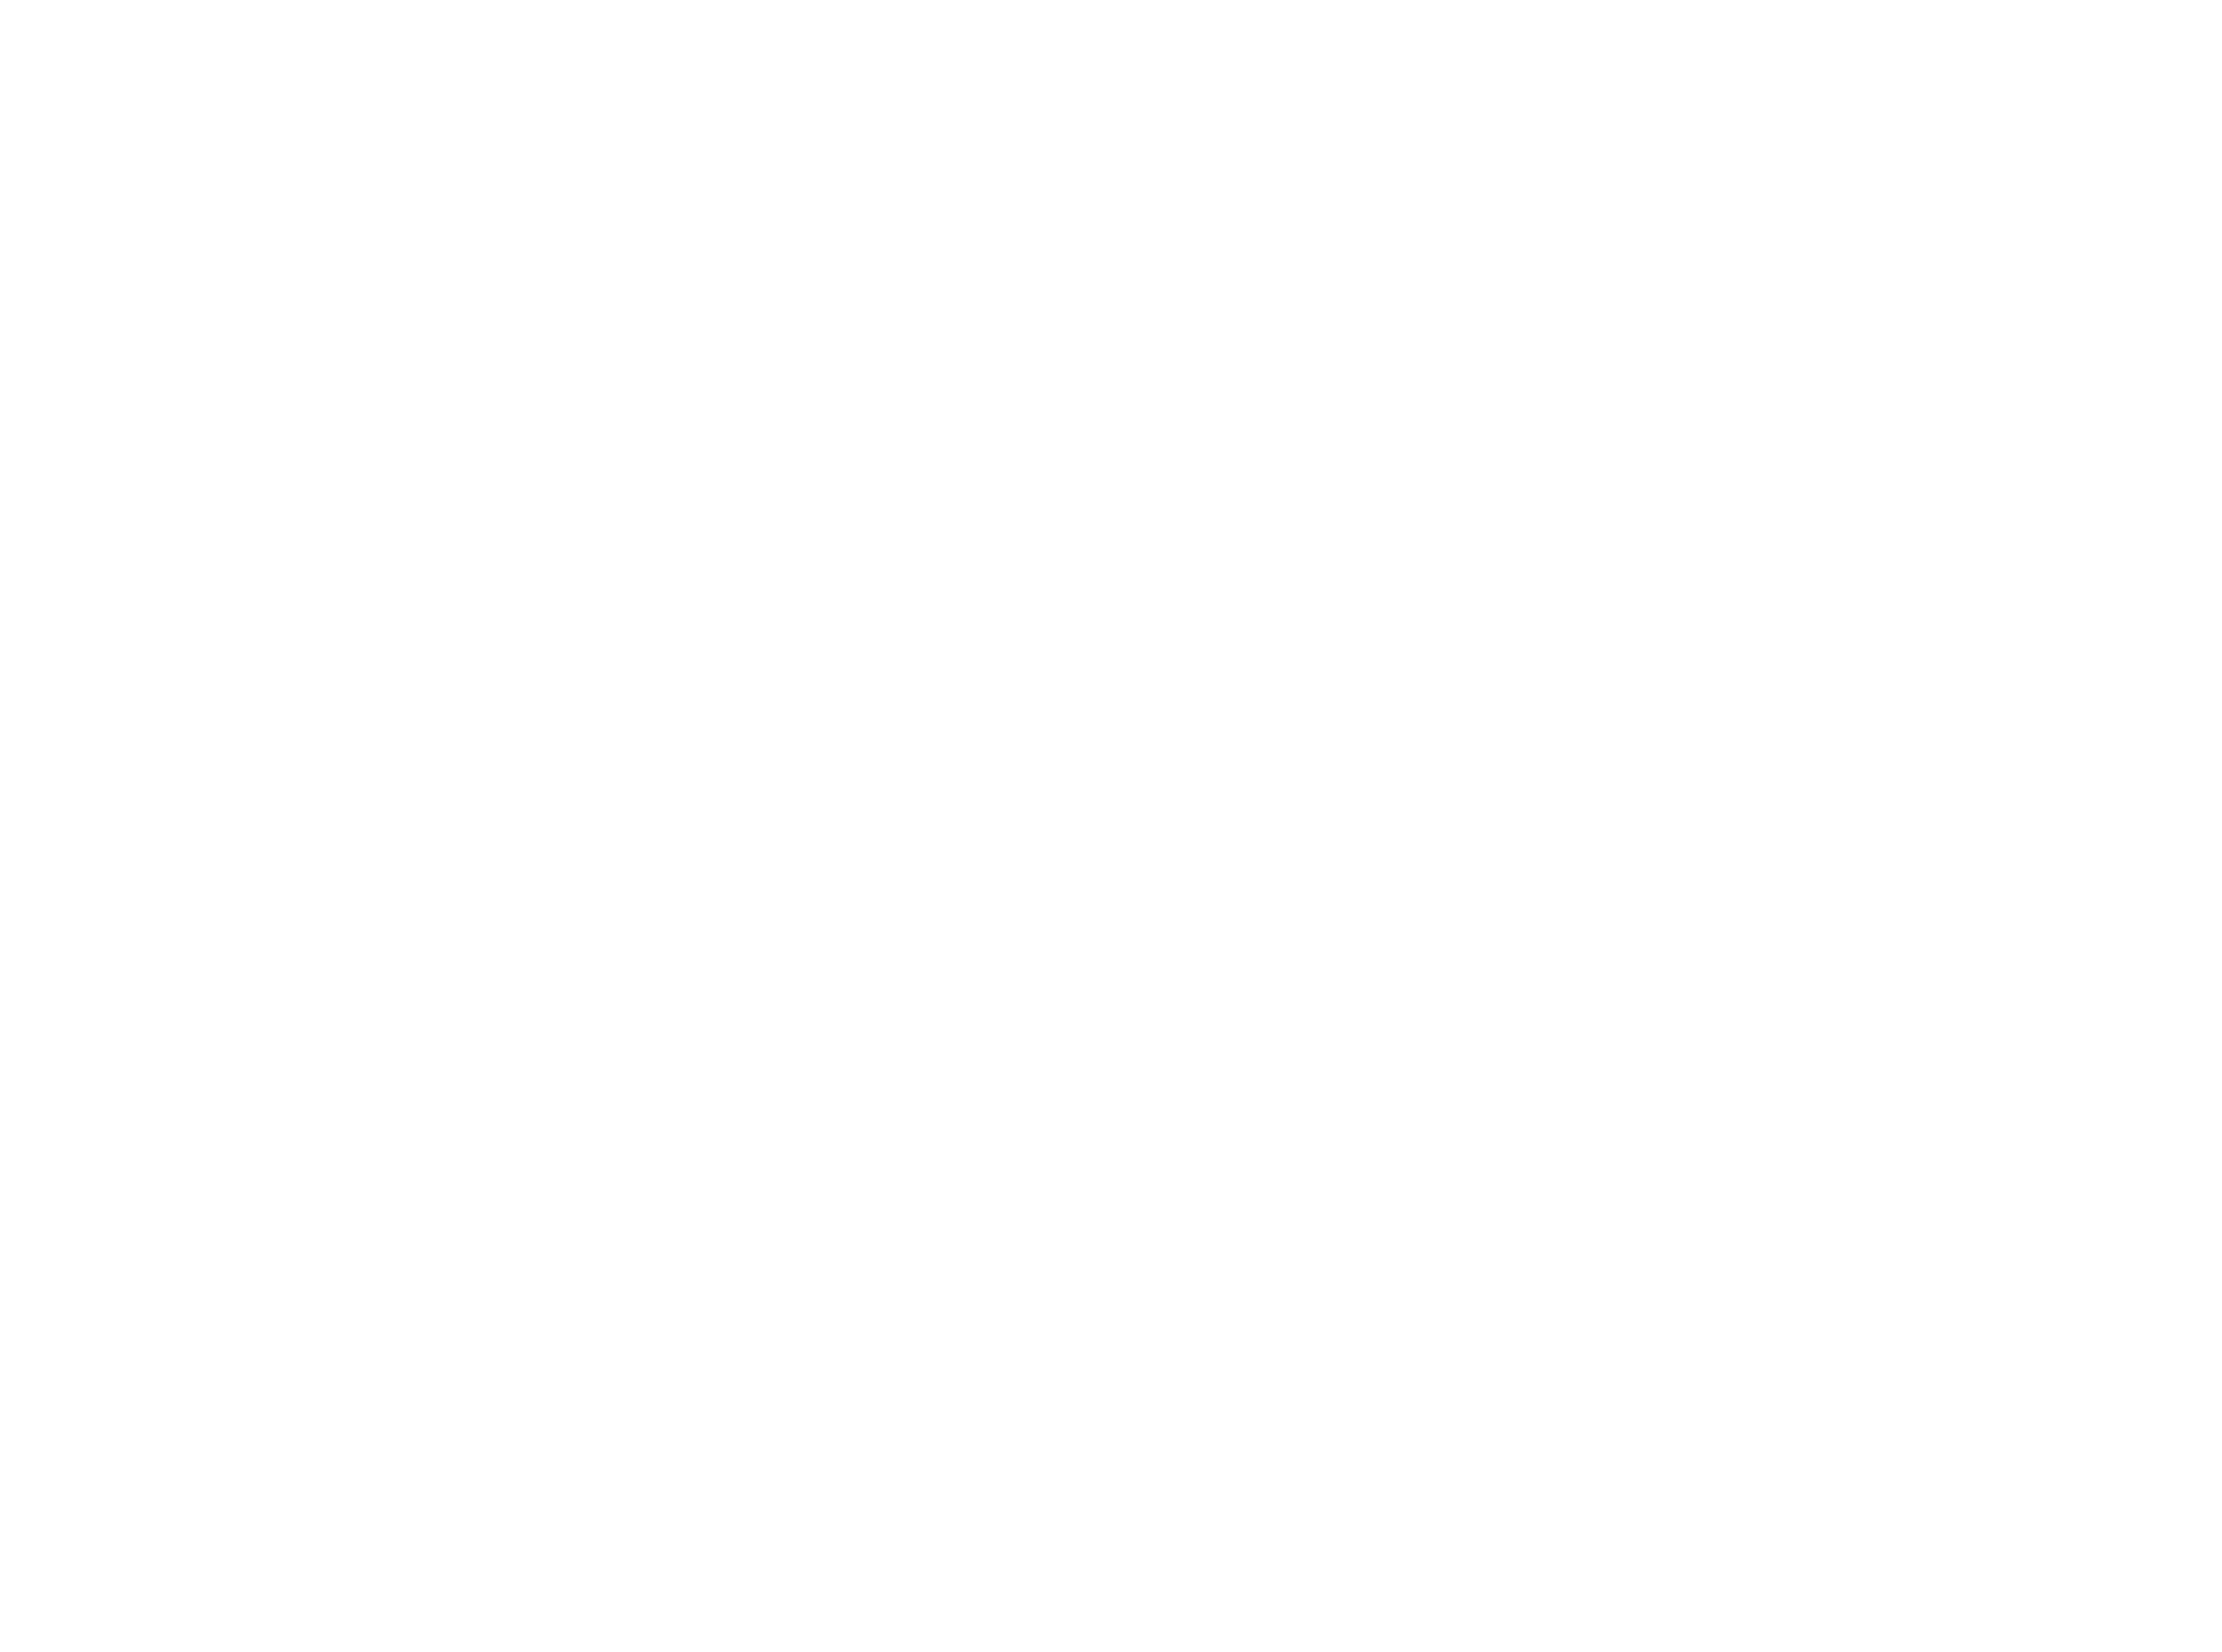 cine cinematic product-01-01.png